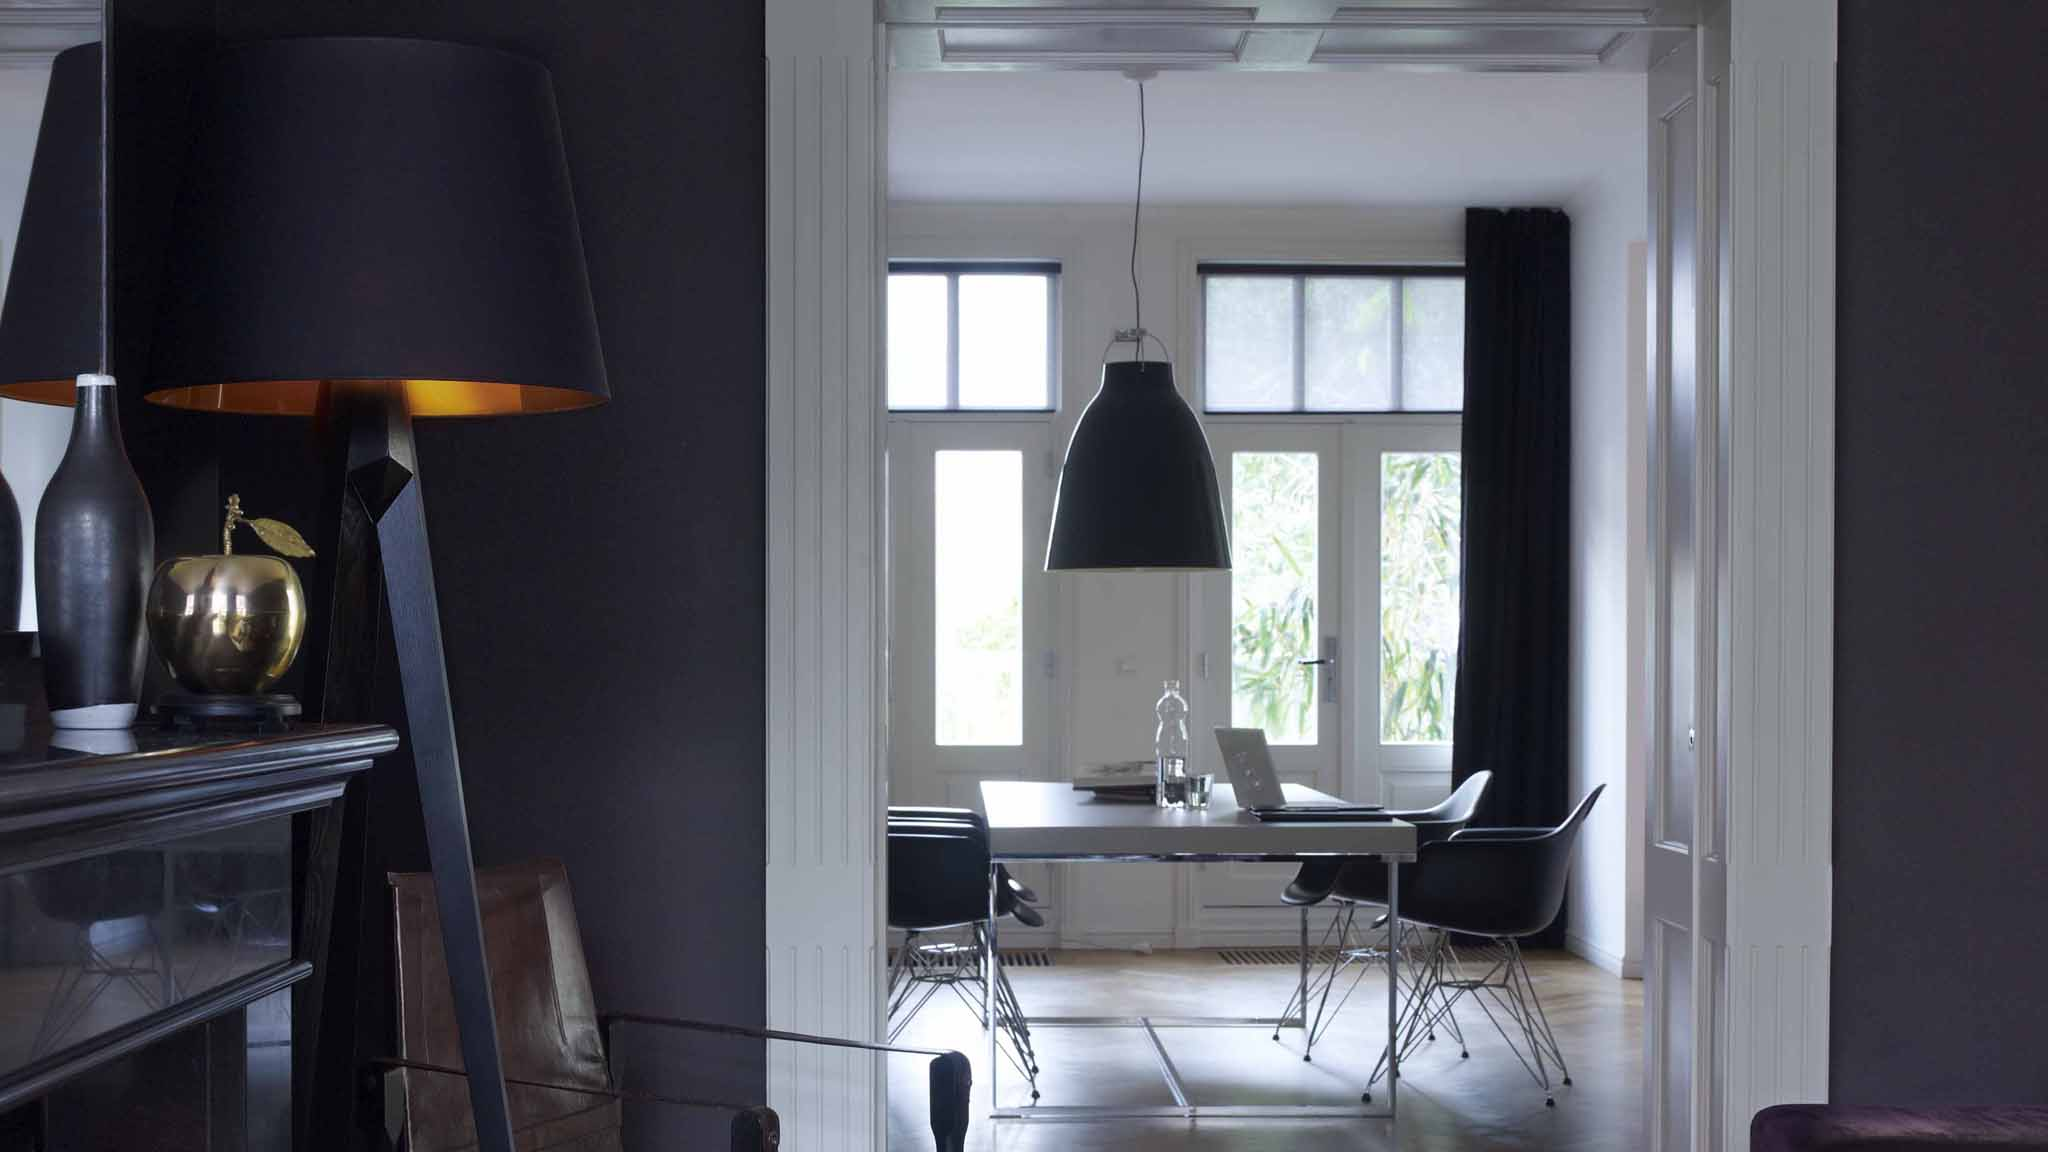 Some darker shades – such as deep, inky blues - are actually recessive, meaning they will add depth to your space and make a room feel larger